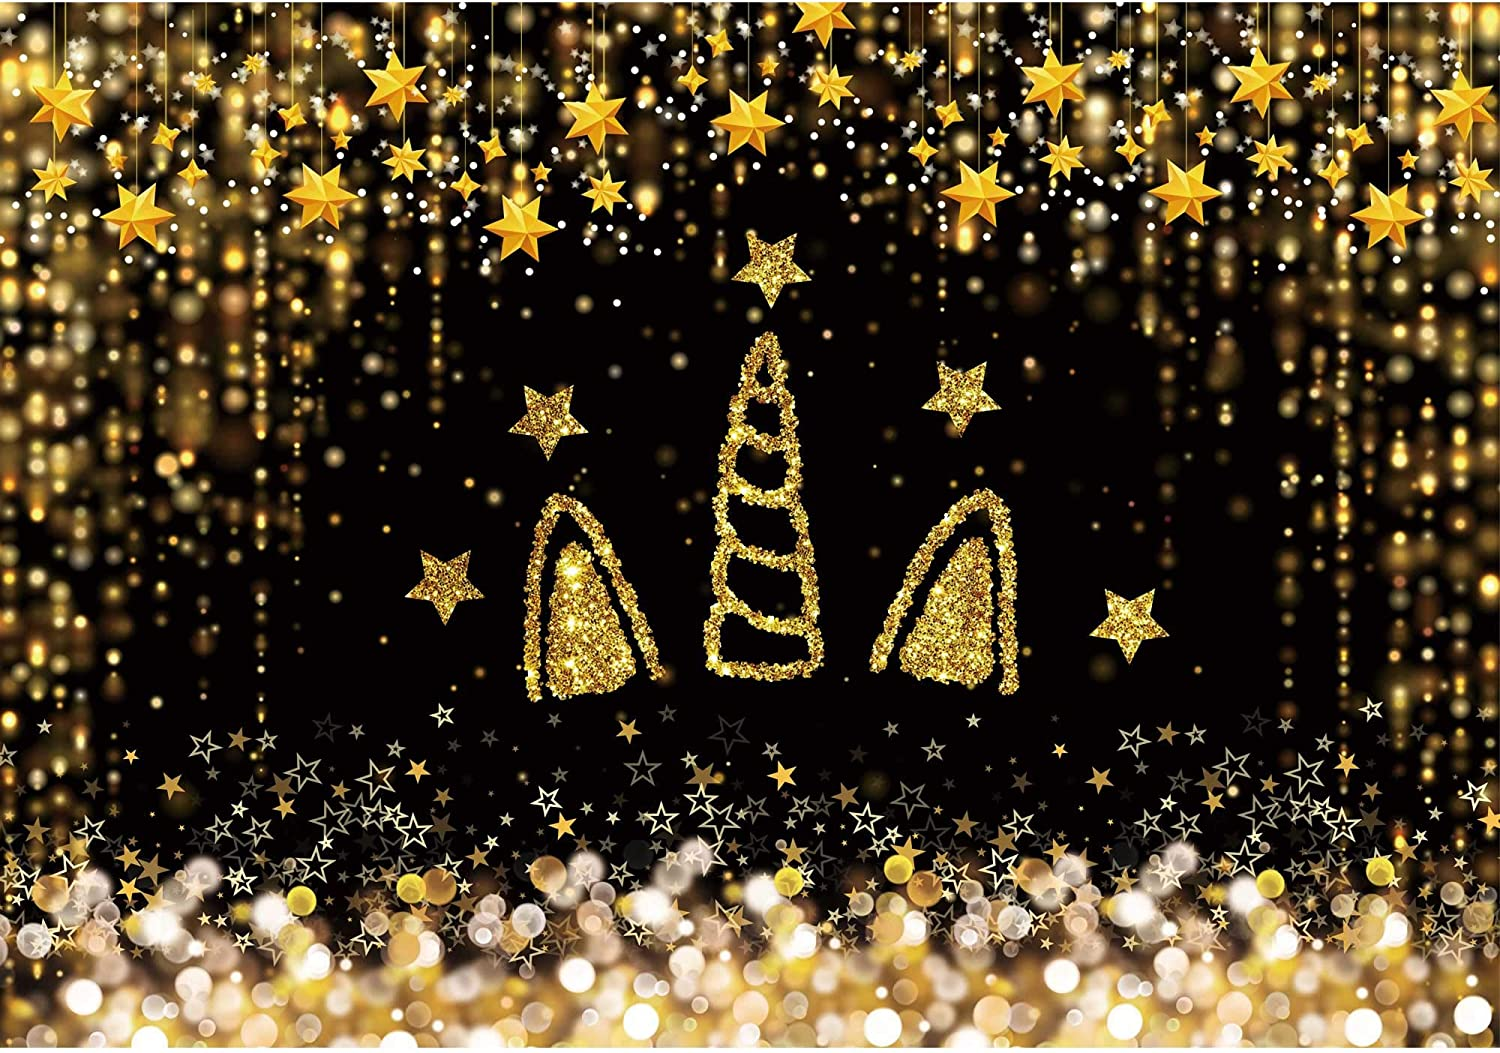 Haboke 7x5ft Soft Wrinkle Free Fabric Black and Gold Unicorn Backdrop Shining Star for Photography Baby Newborn Birthday Party Supplies Background Decorations Party Studio Props